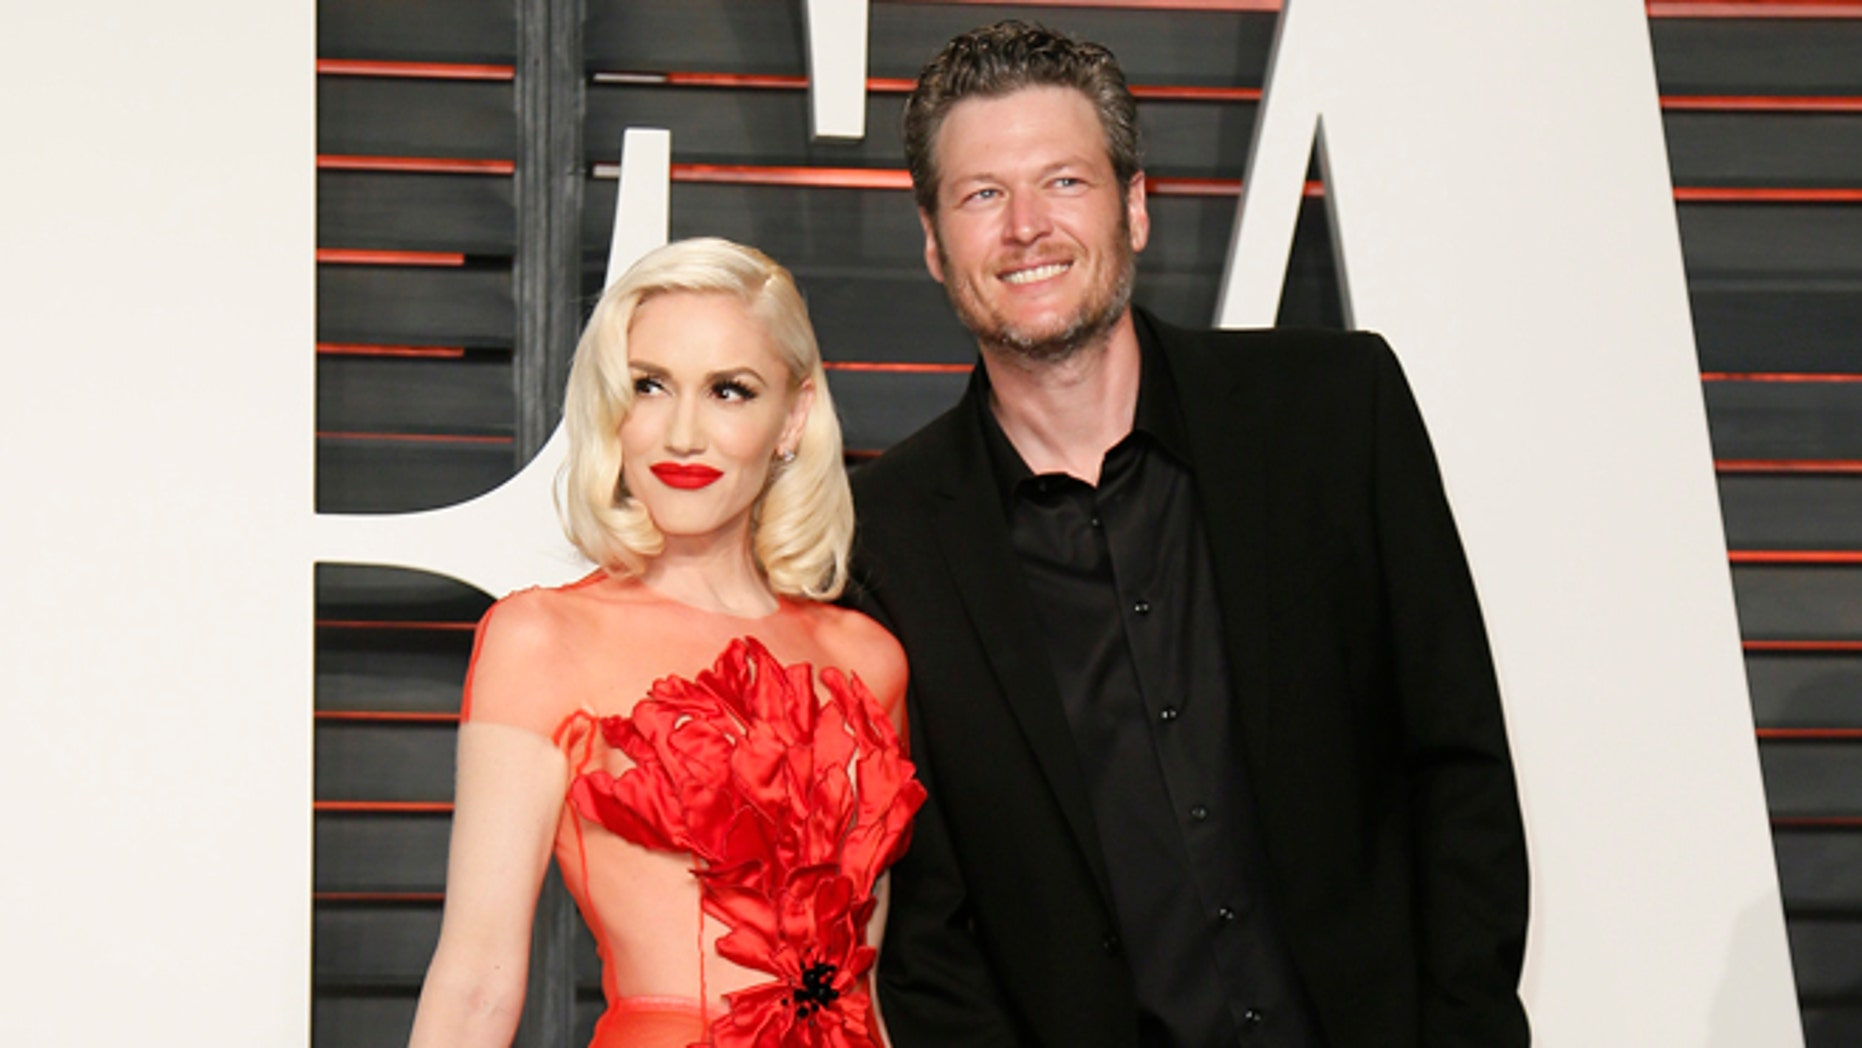 Blake Shelton shared a pinup-style photo of girlfriend Gwen Stefani for the pop star's 49th birthday.